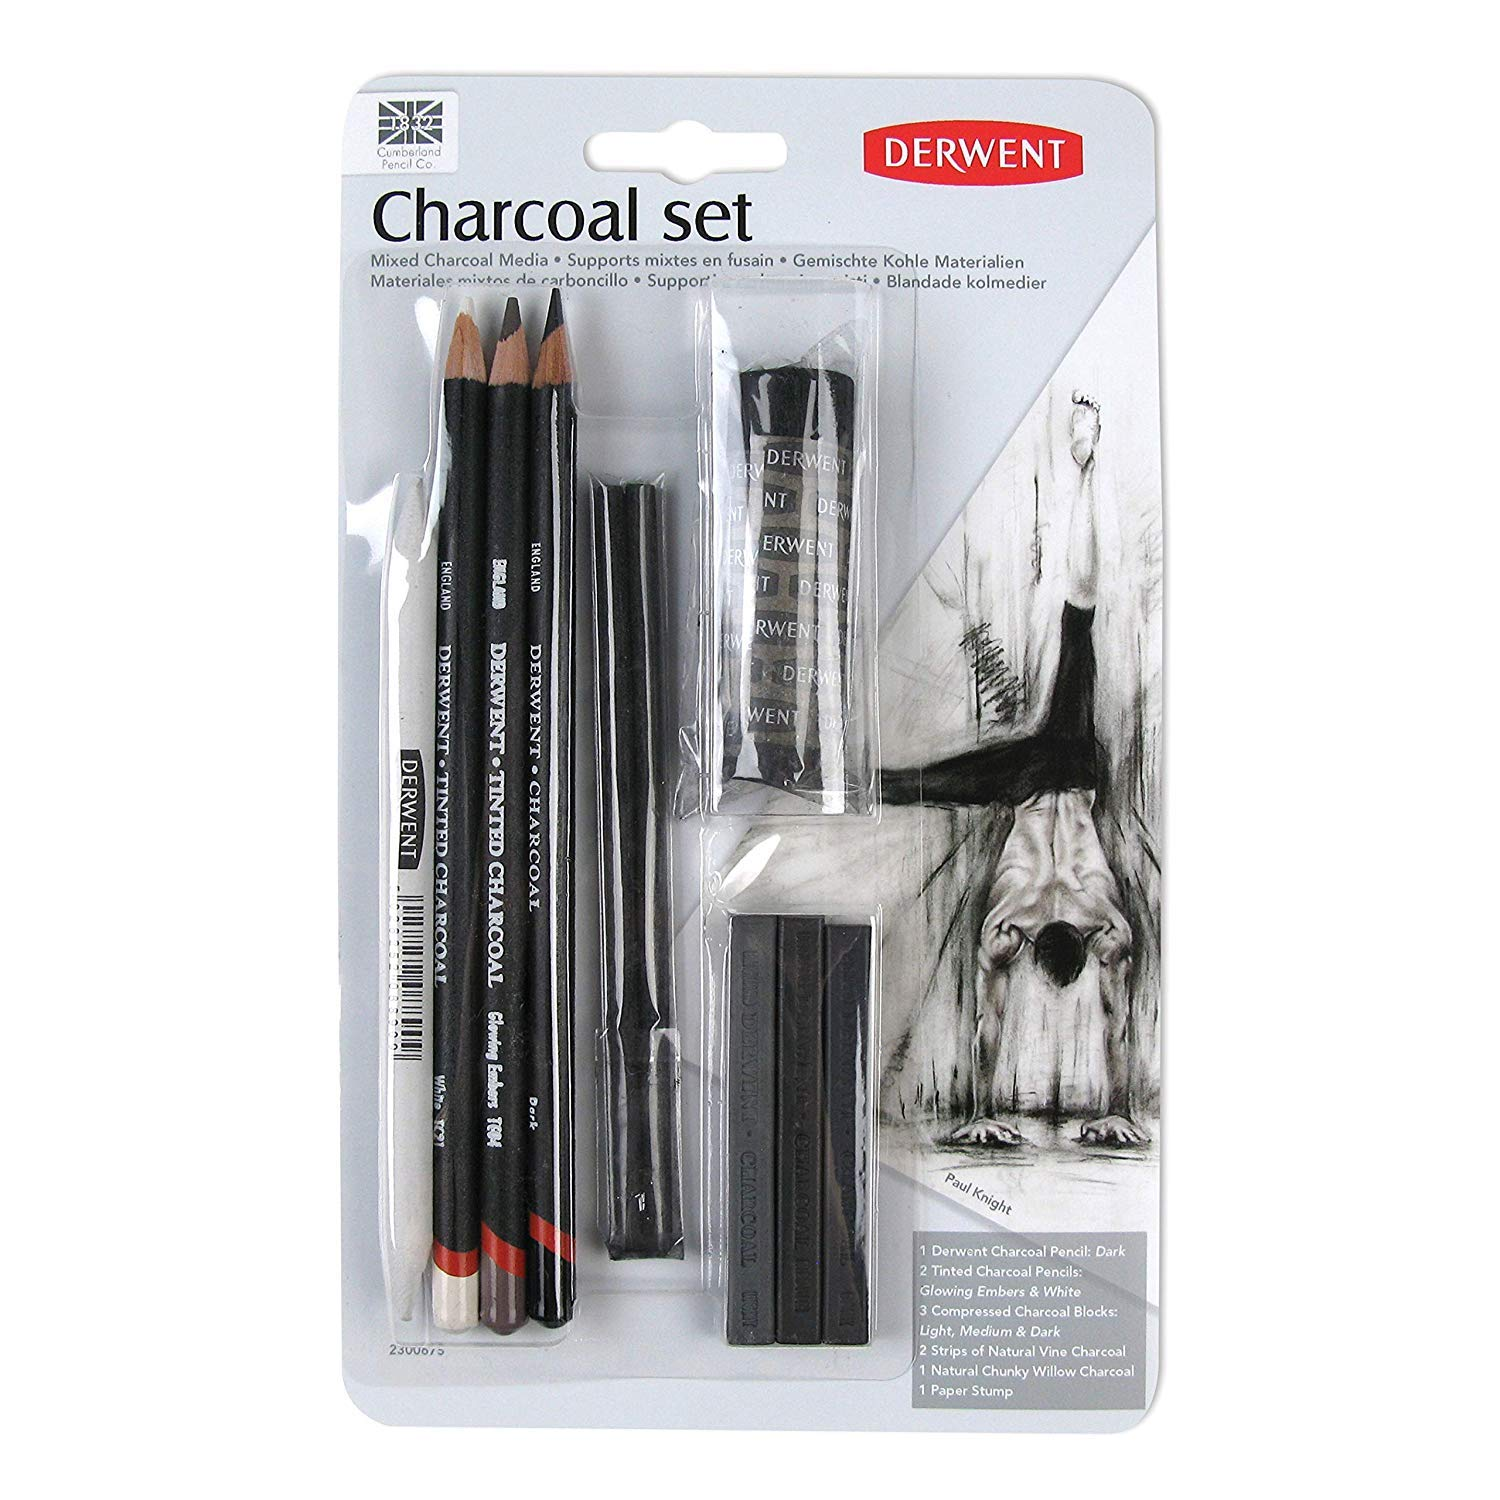 Derwent Charcoal Set